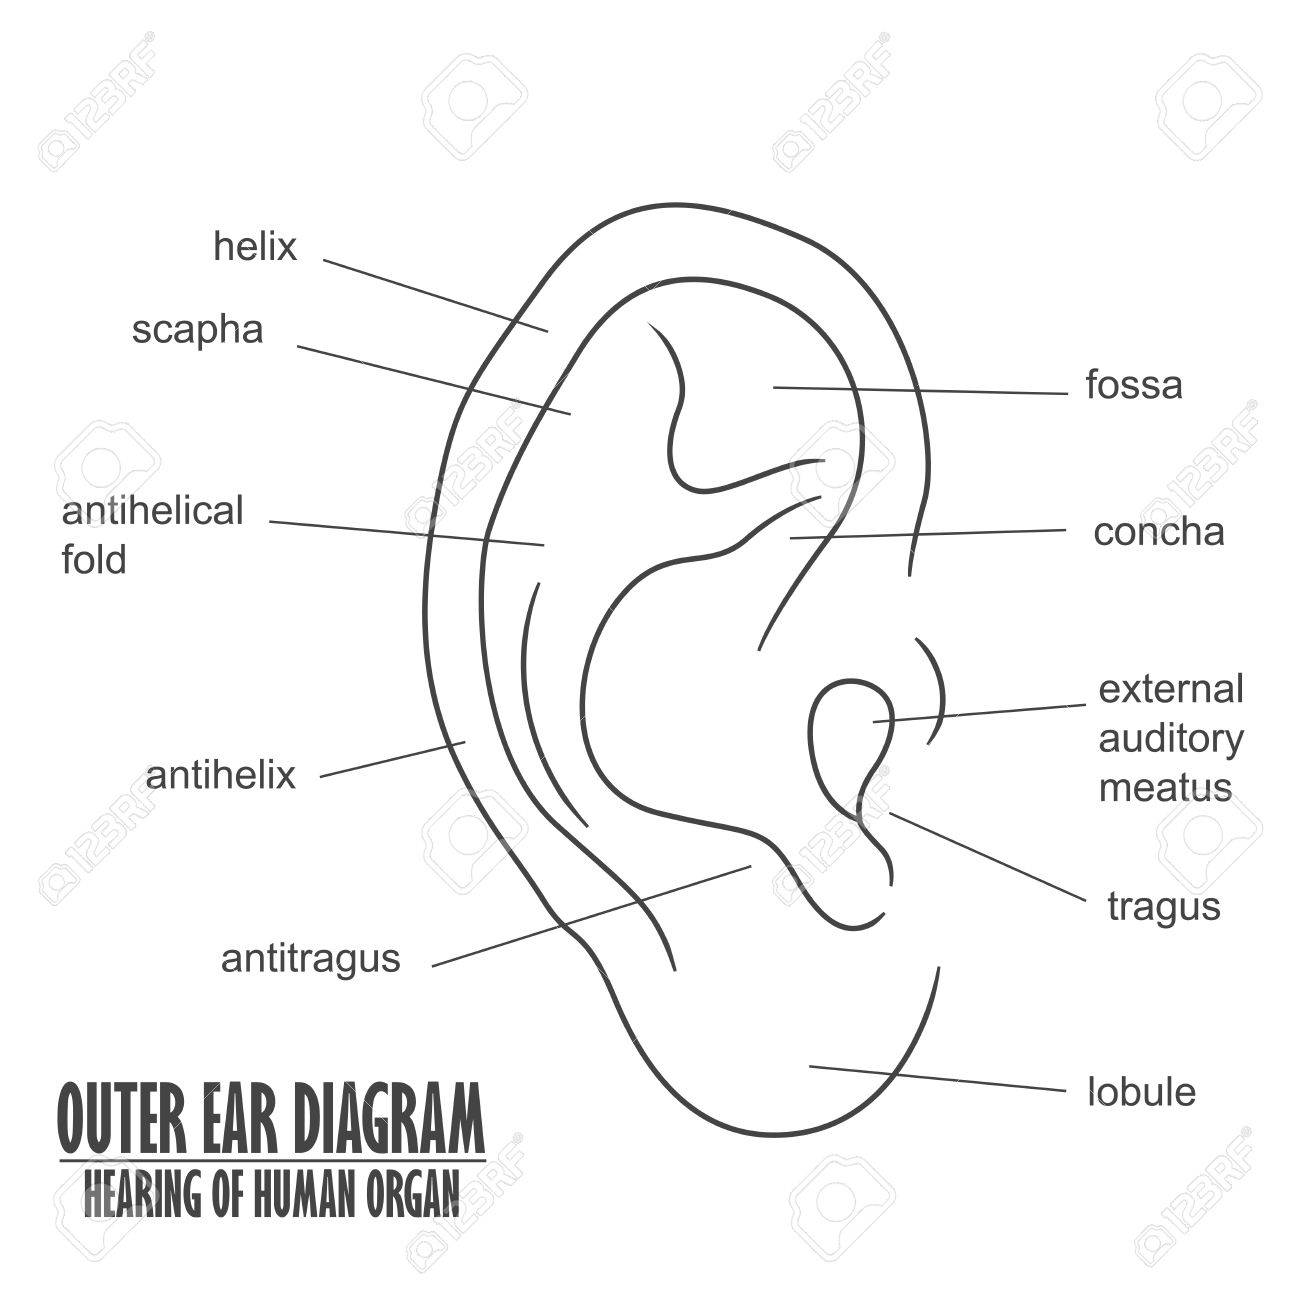 hight resolution of outer ear diagram hearing of human organ royalty free clipartsouter ear diagram hearing of human organ